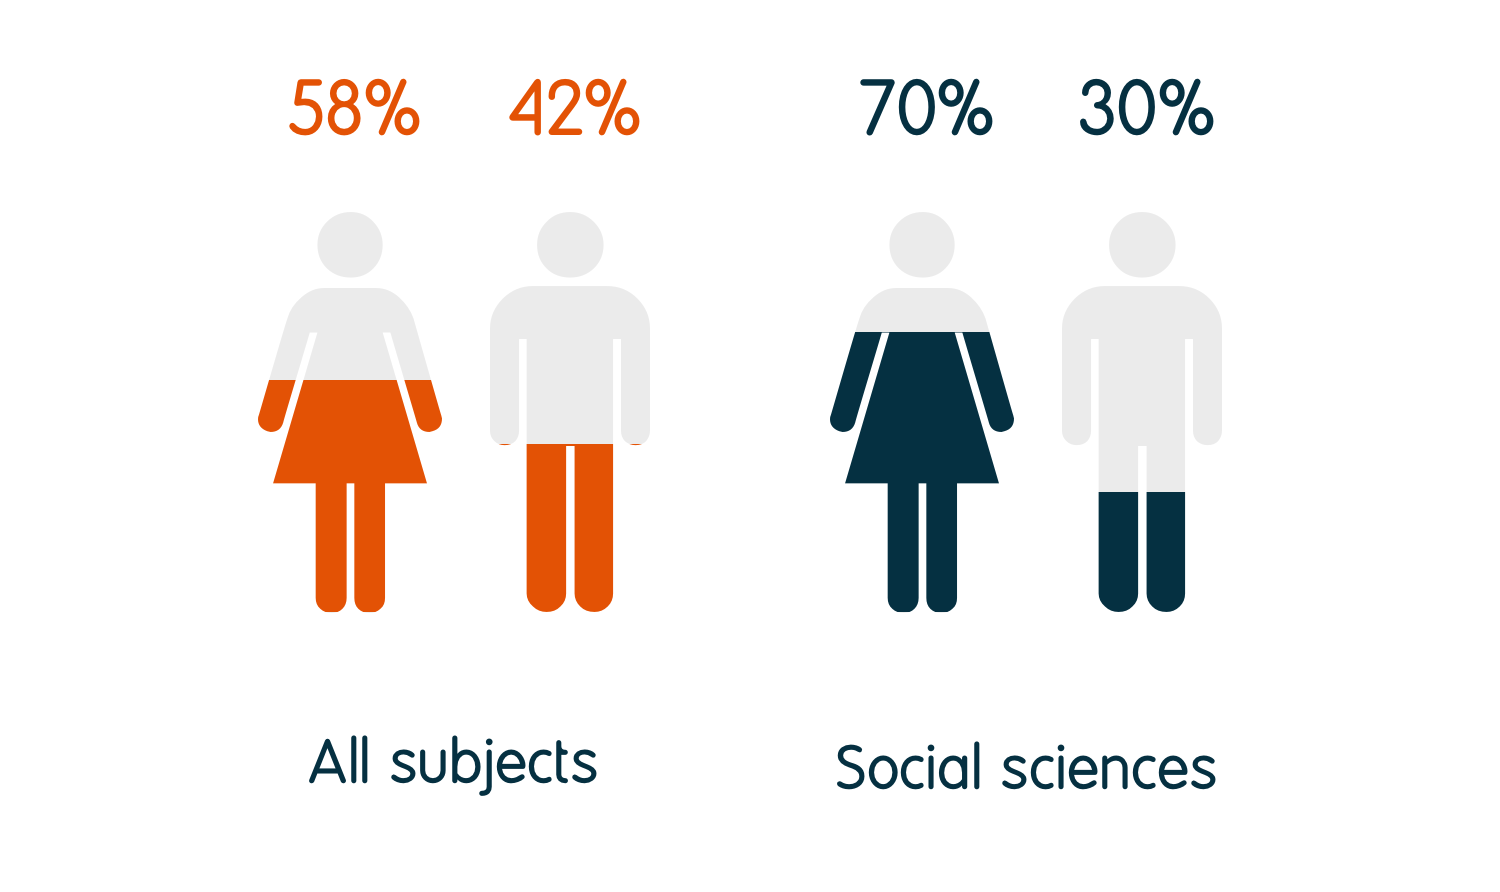 70% of social science graduates identify as female and 30% as male, compared to 58% female and 42% male for all graduates.